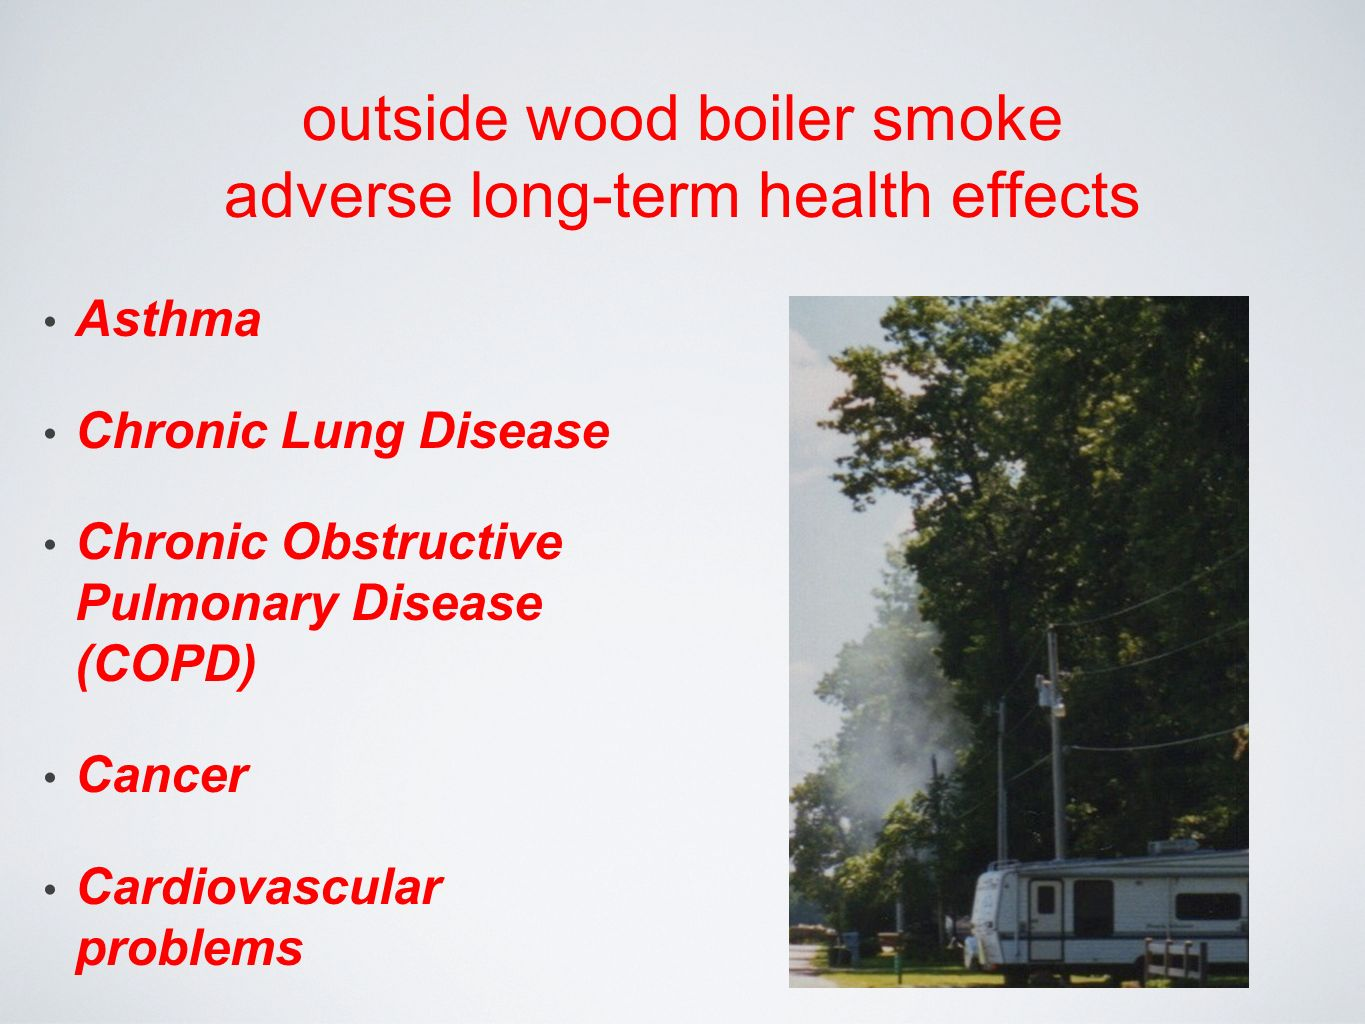 outside wood boiler smoke adverse long-term health effects Asthma Chronic Lung Disease Chronic Obstructive Pulmonary Disease (COPD) Cancer Cardiovascular problems